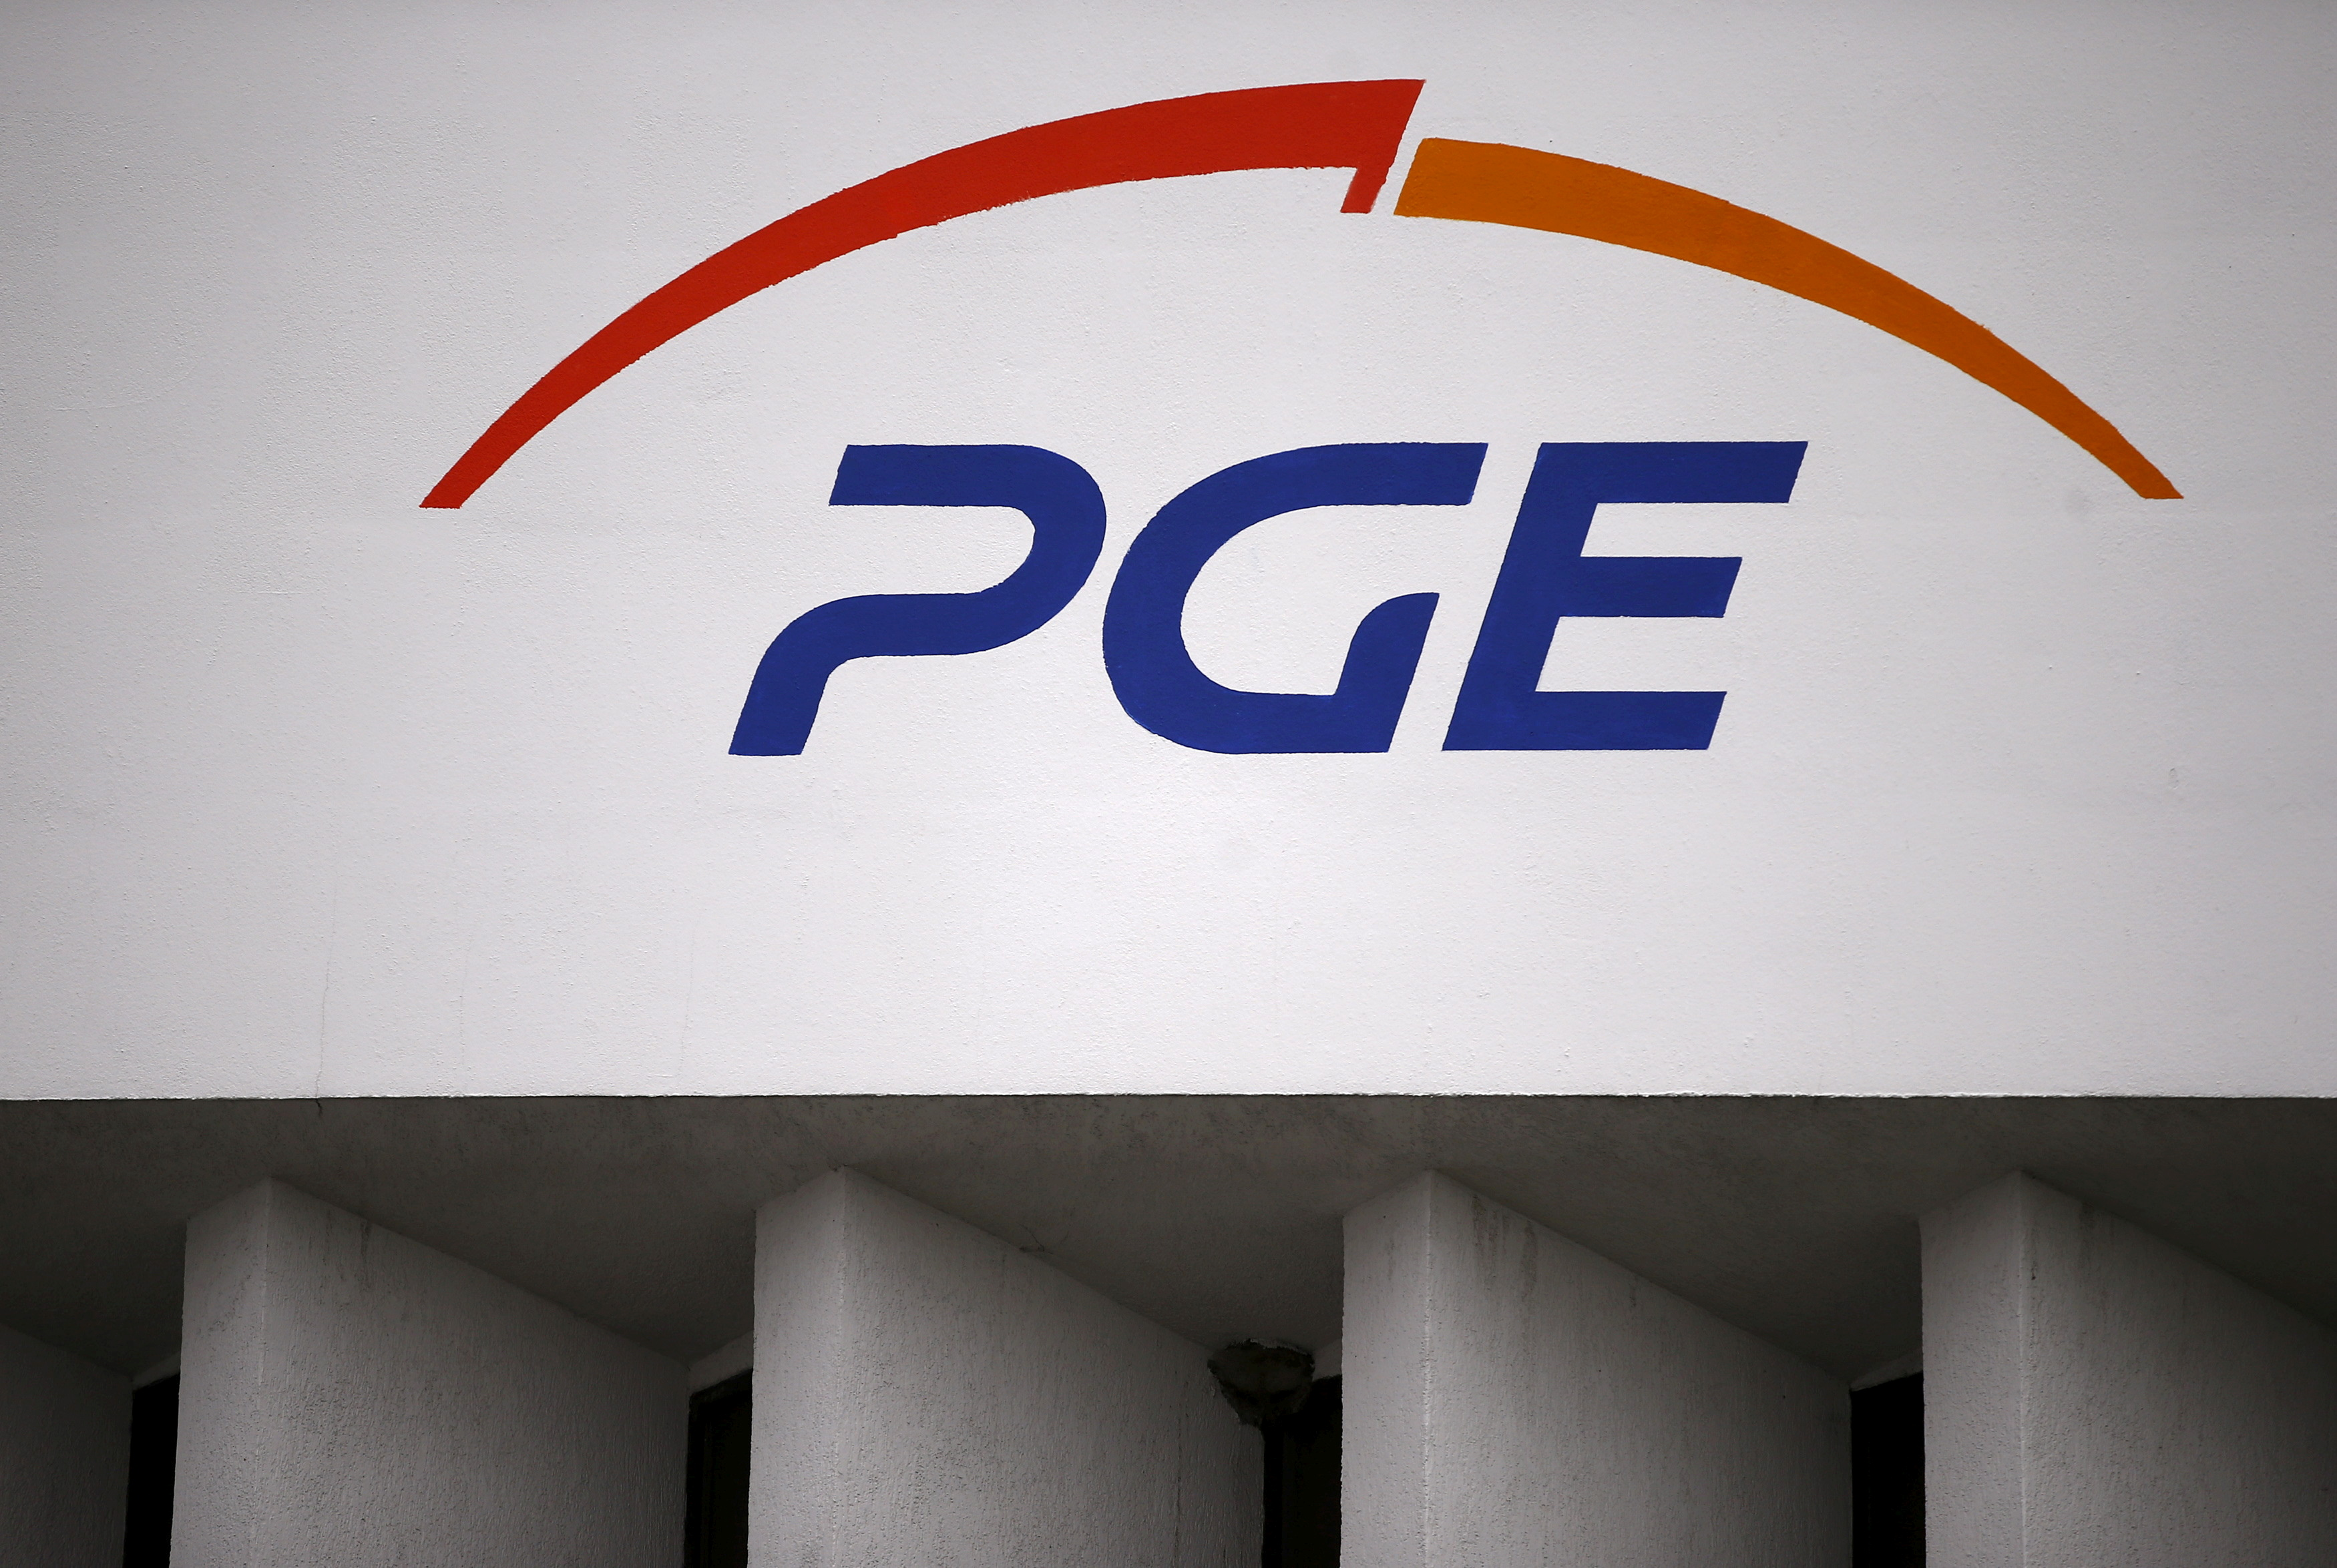 The logo of PGE Group is seen on PGE Gornictwo i Energetyka Konwencjonalna S.A. (Mining and Conventional Energy) building at the Belchatow Coal Mine, the biggest opencast mine of brown coal in Poland, near Belchatow, December 2 , 2015. REUTERS/Kacper Pempel